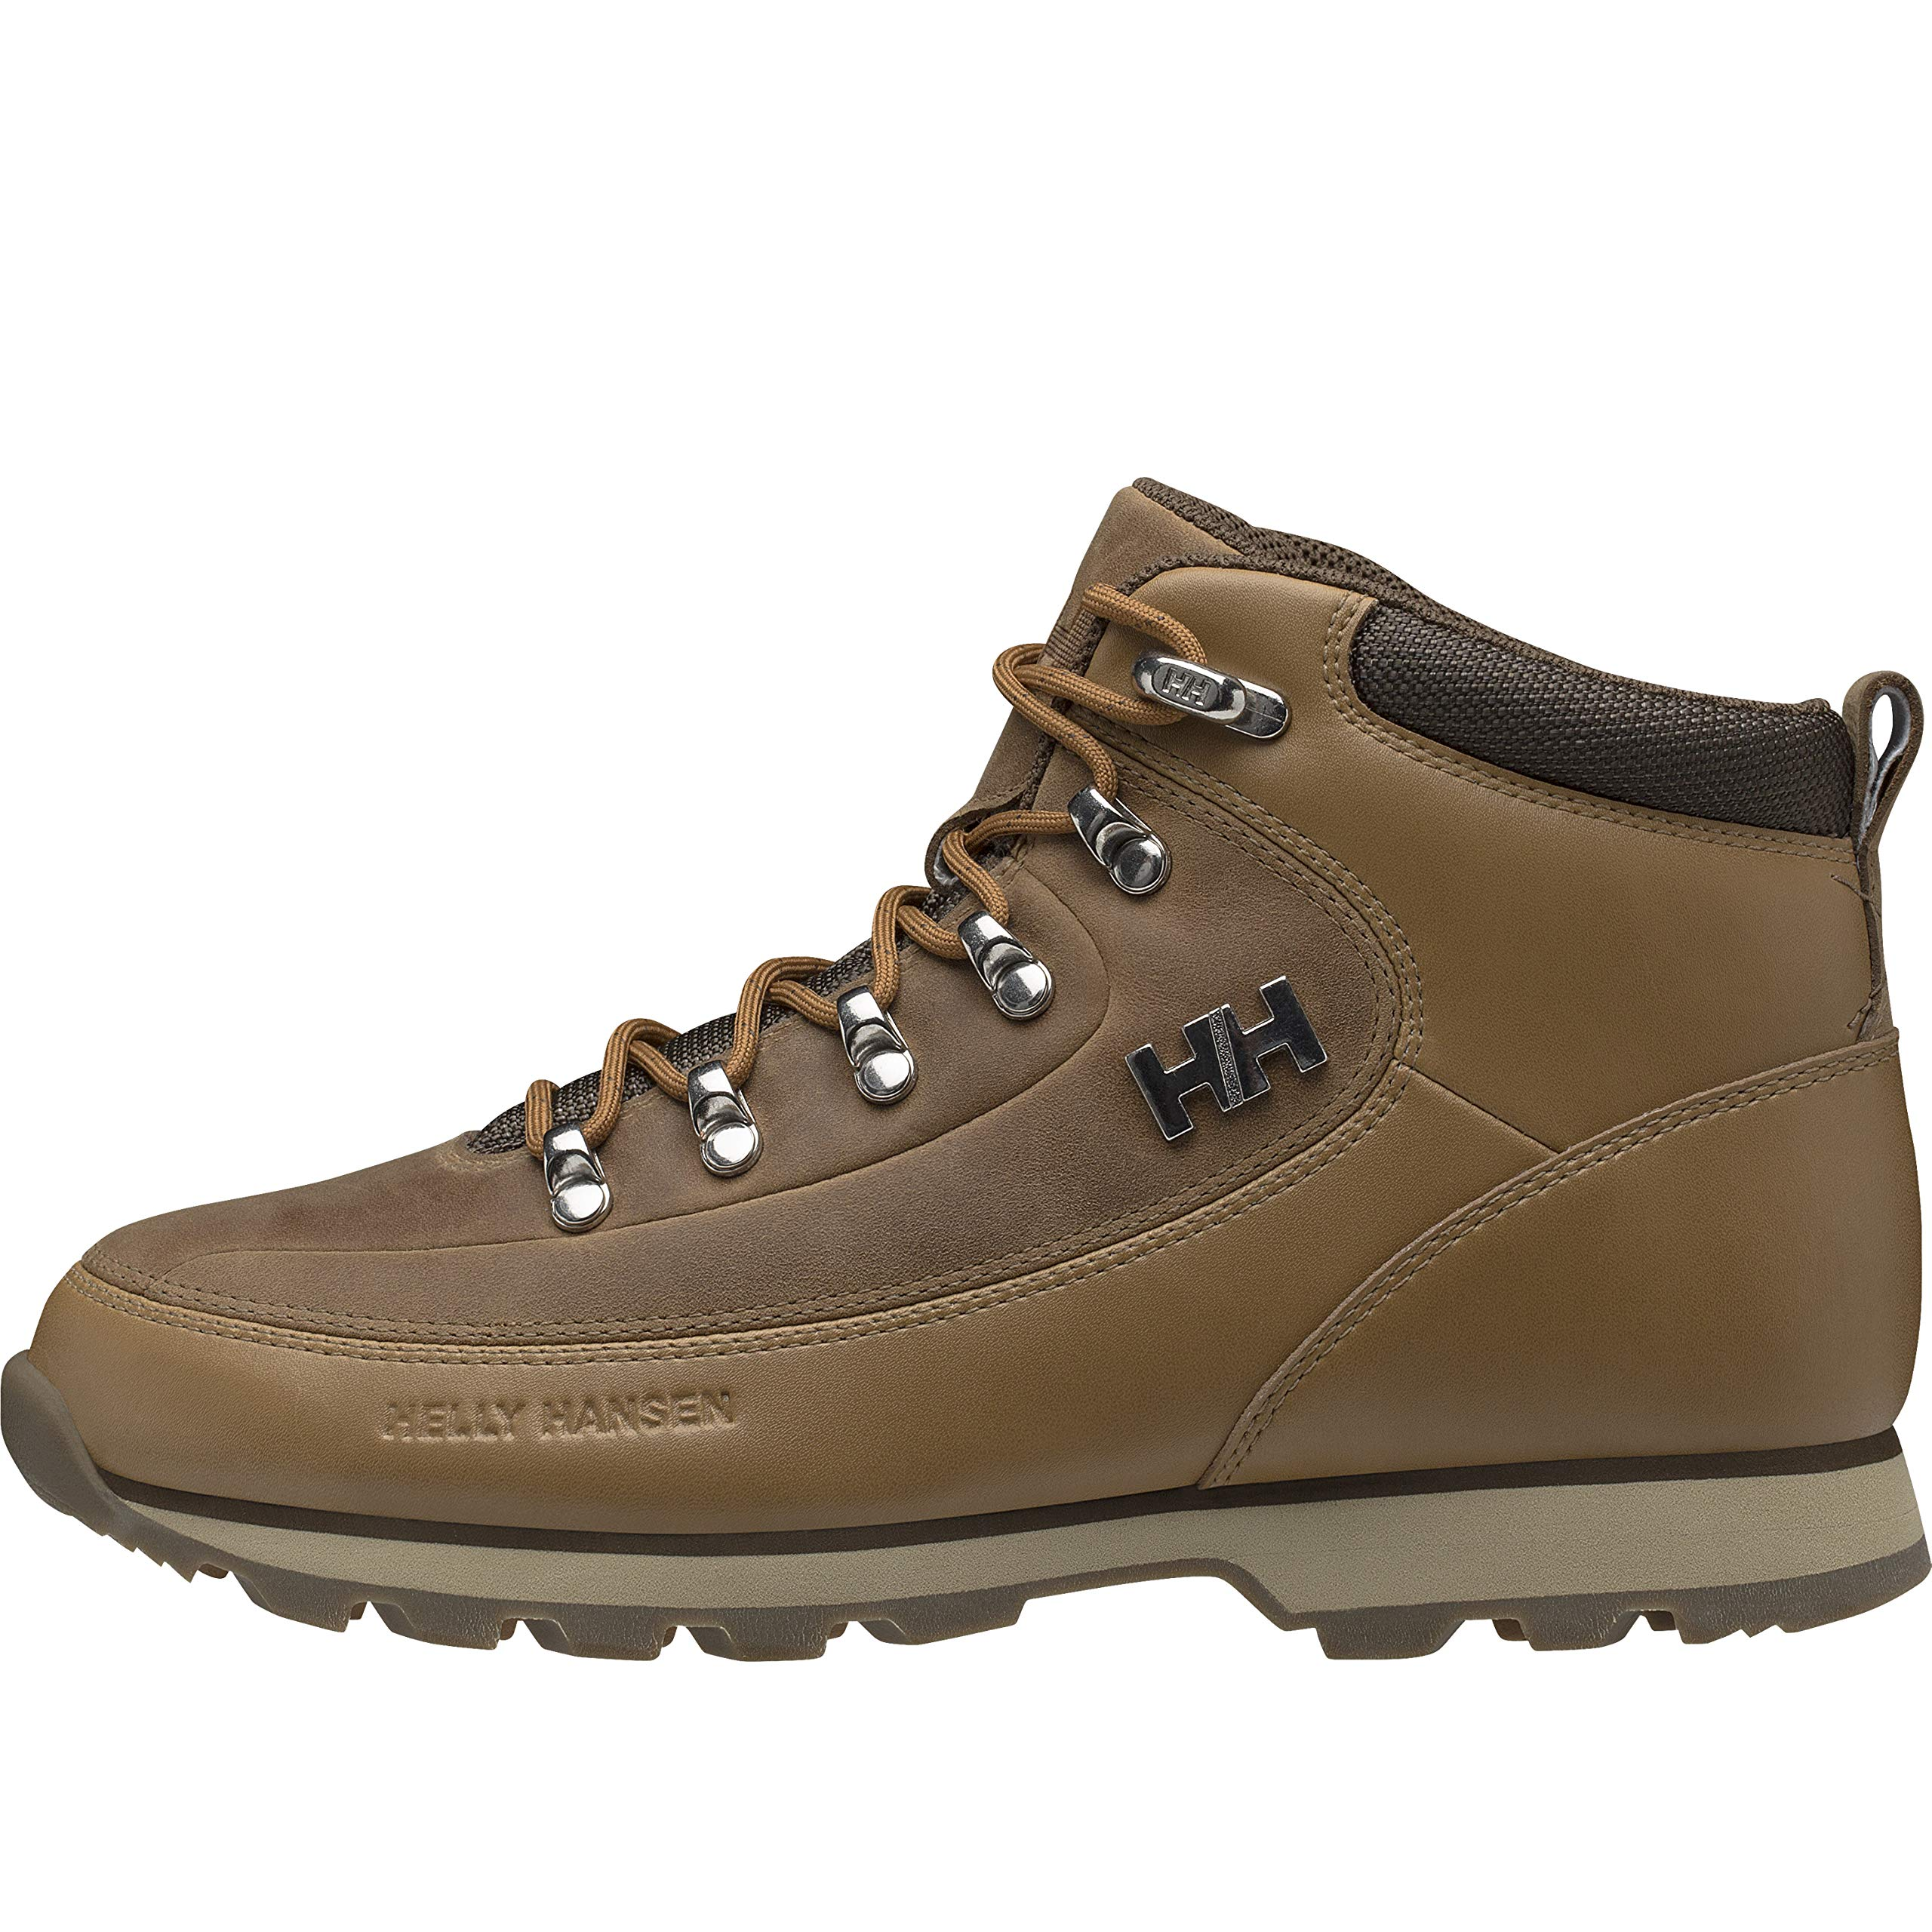 Women's High Rise Hiking Boots